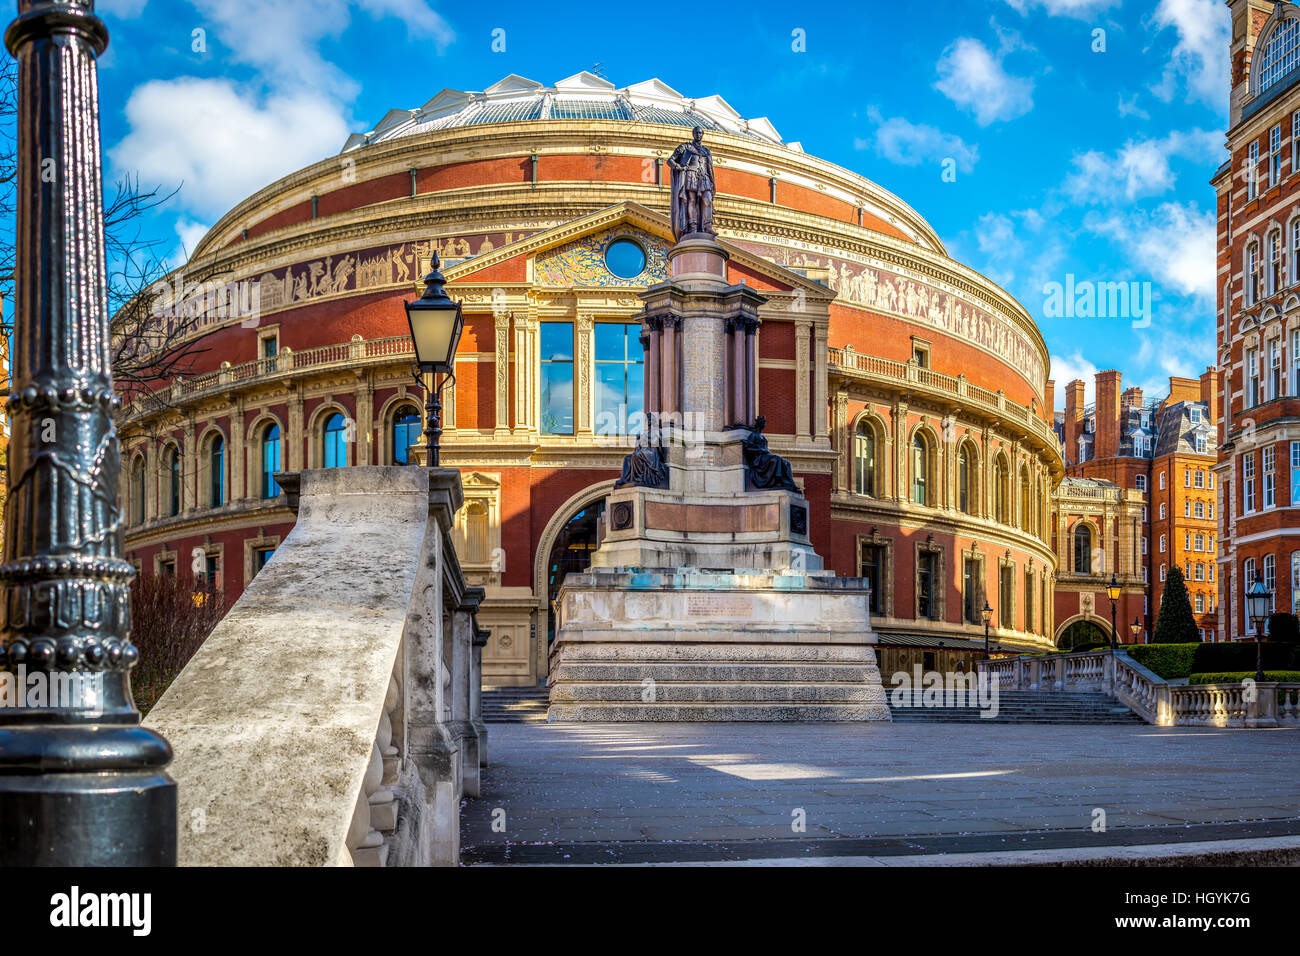 The Royal Albert hall entrance in South Kensington, London, UK - Stock Image